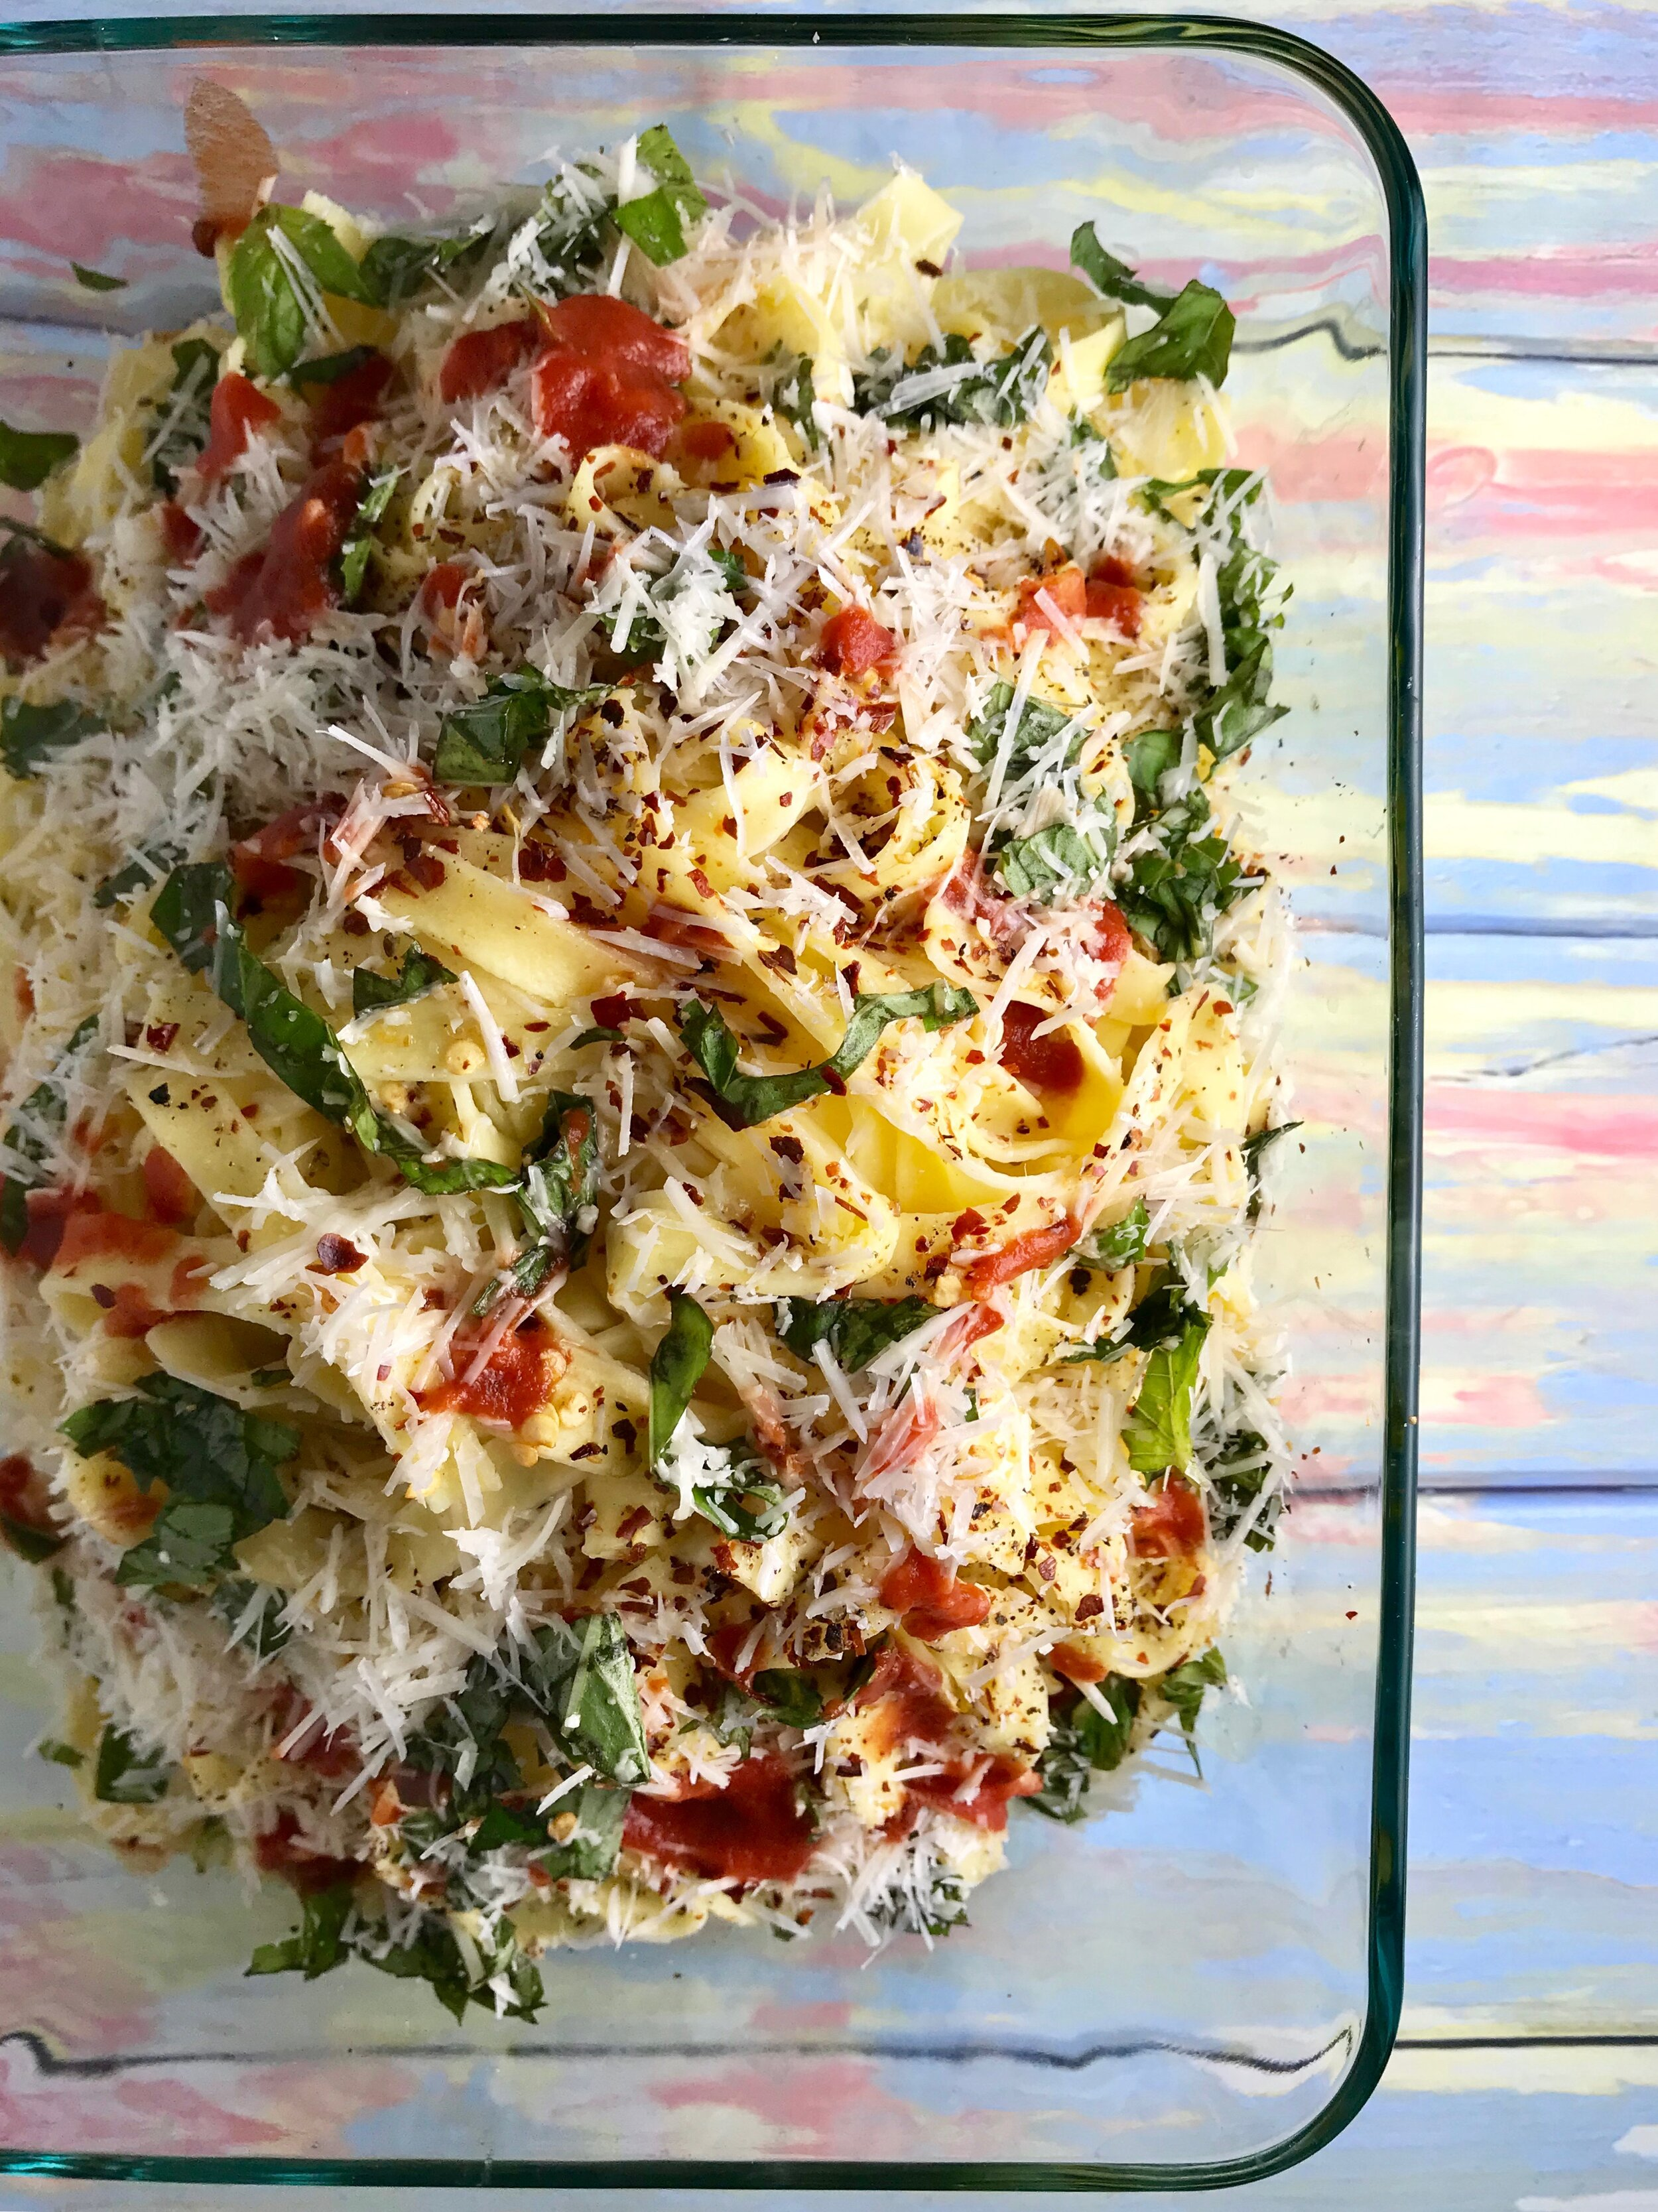 Tagliatelle pasta with basil and parmesan